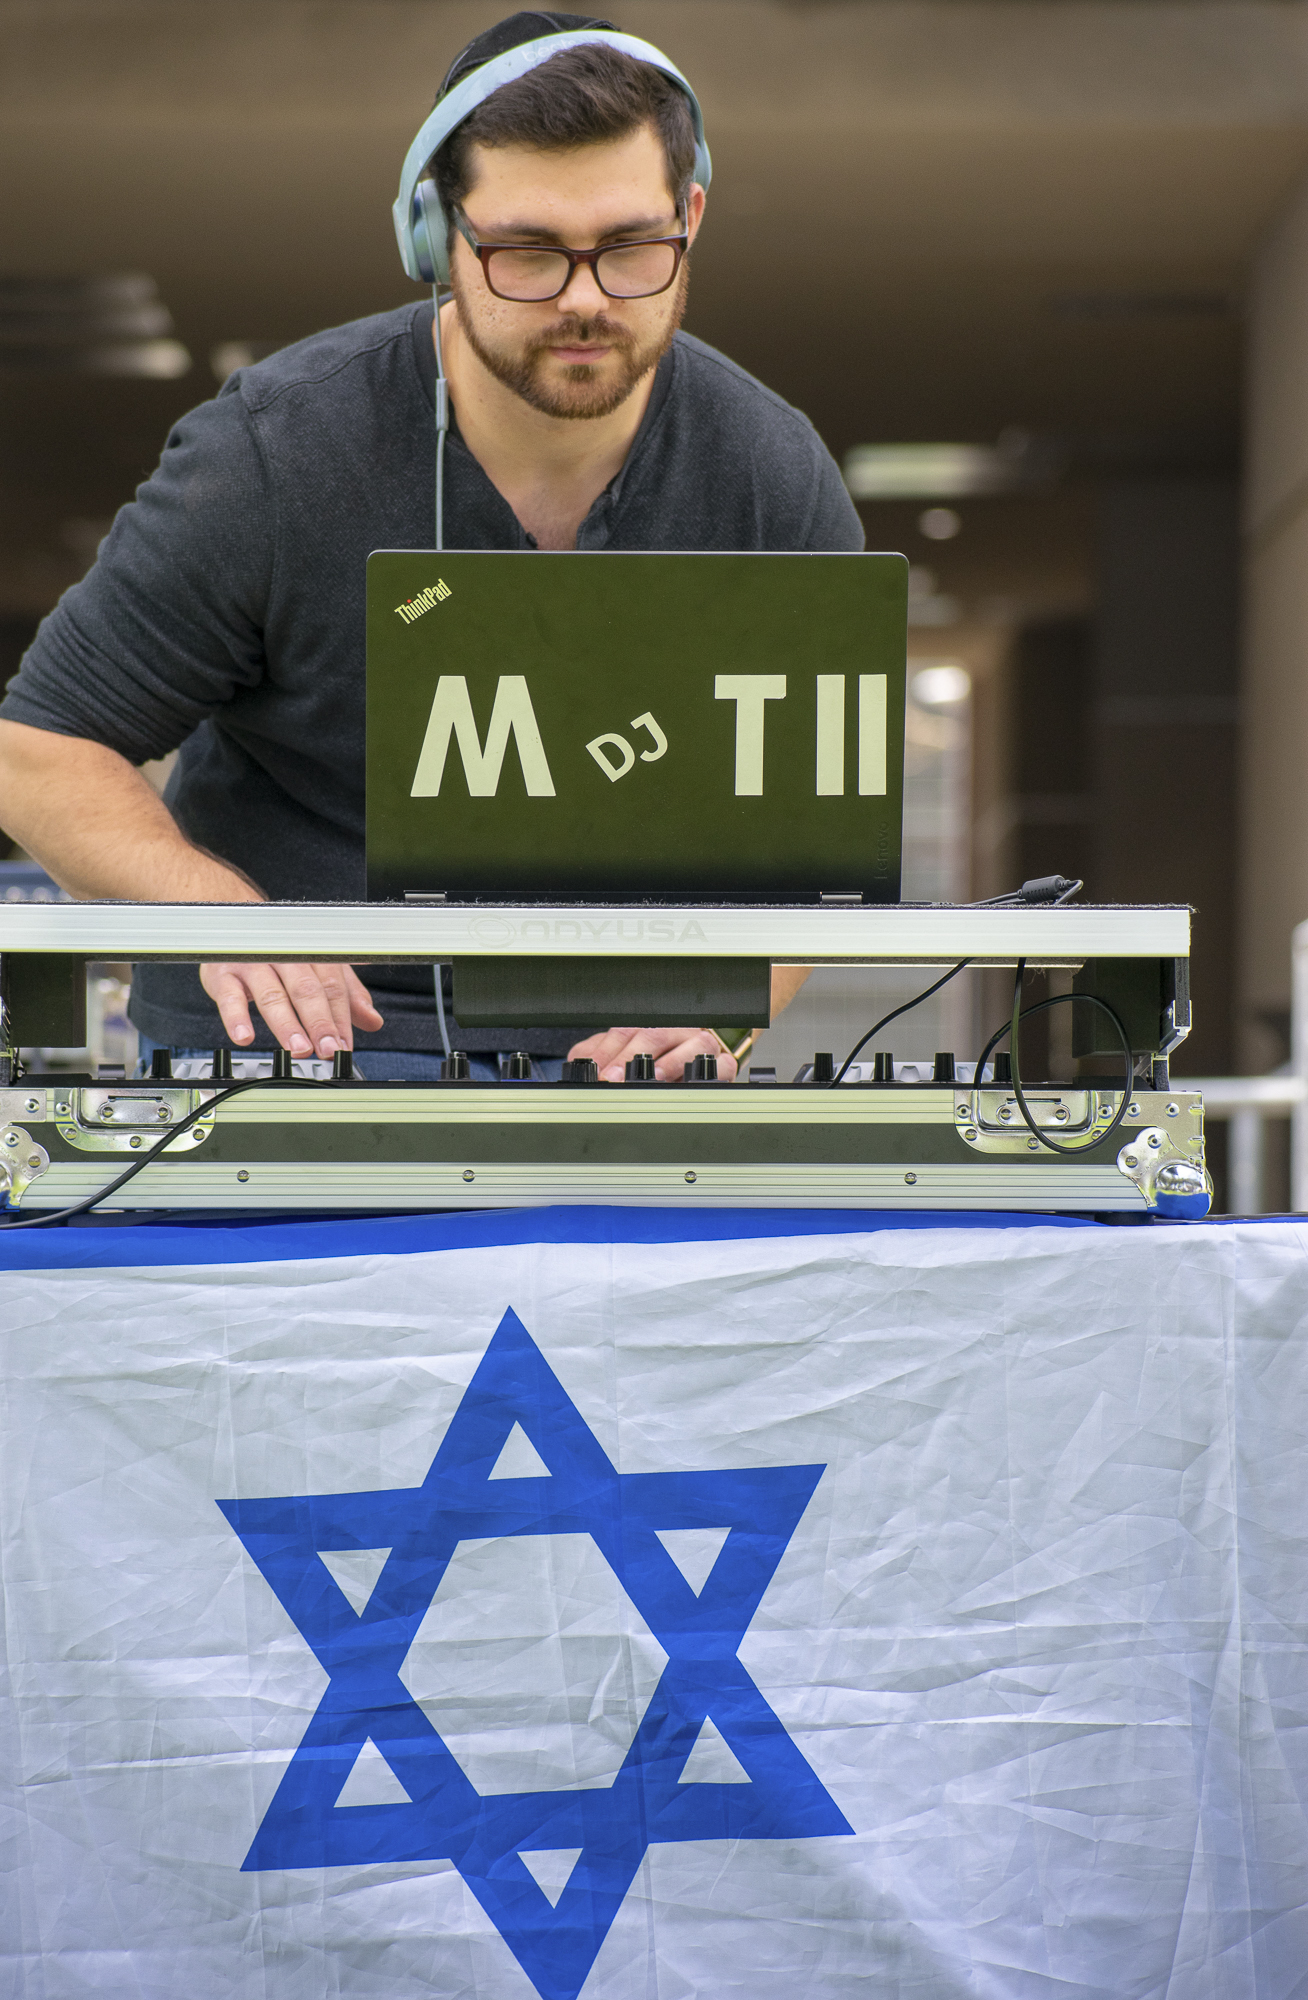 DJ Moti, otherwise known as David Leibman, a student at Santa Monica College, plays Israeli music during an event put on by the Students Supporting Israel club at Santa Monica College on Thursday, May 10 in Santa Monica, California. The event was a celebration for the 70th anniversary of Israel's independence. (Ethan Lauren/Corsair Photo)